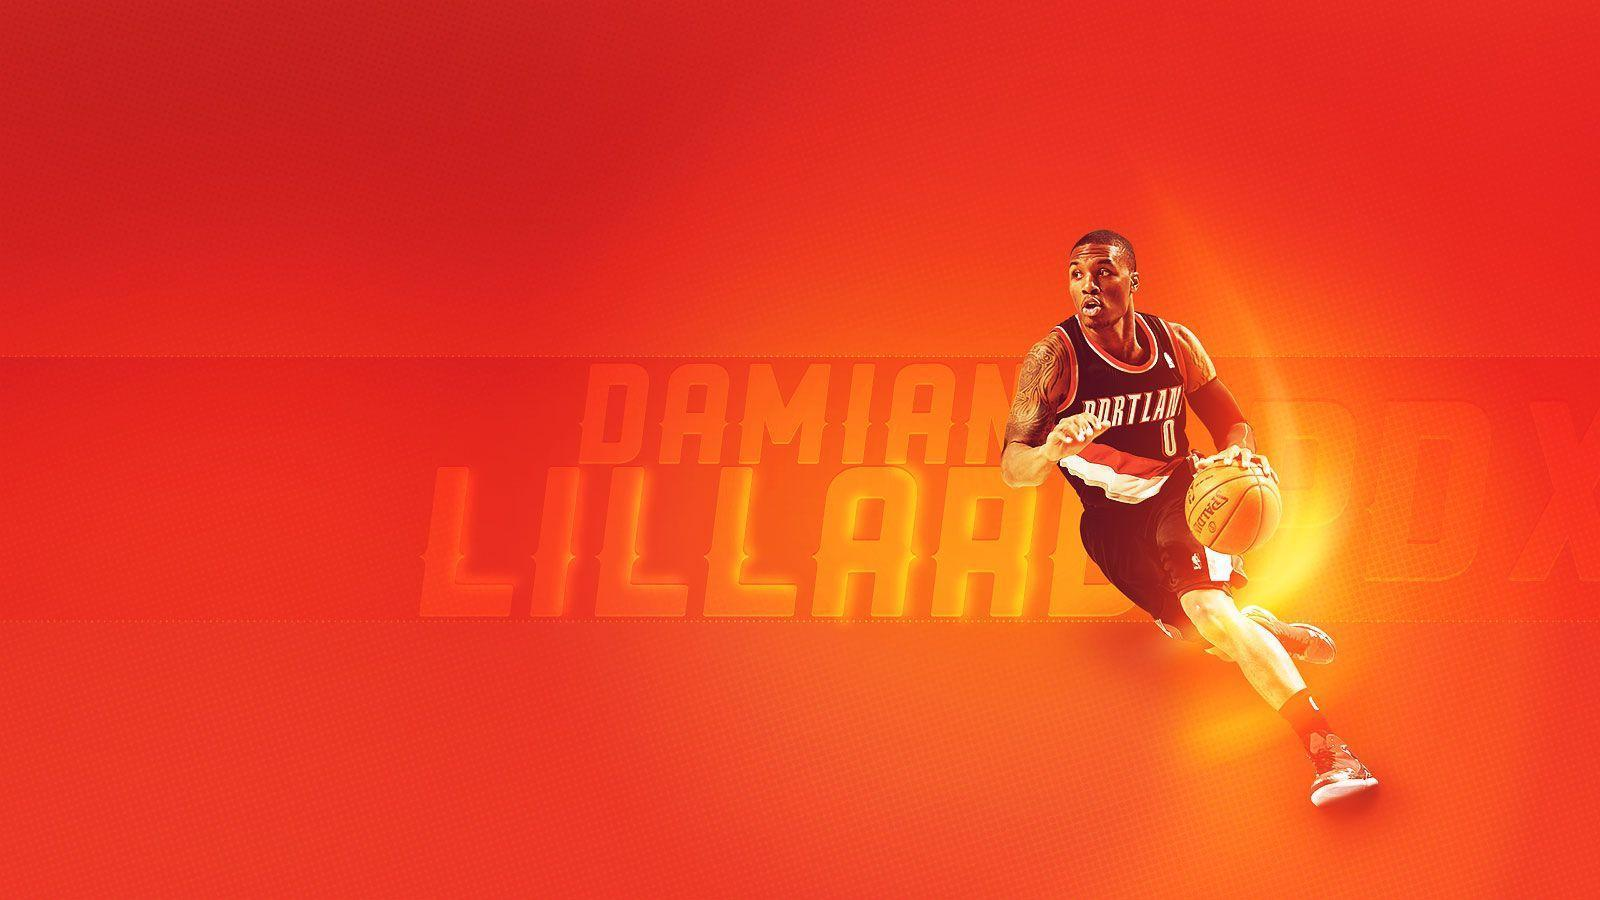 Damian Lillard Wallpapers | Basketball Wallpapers at ...